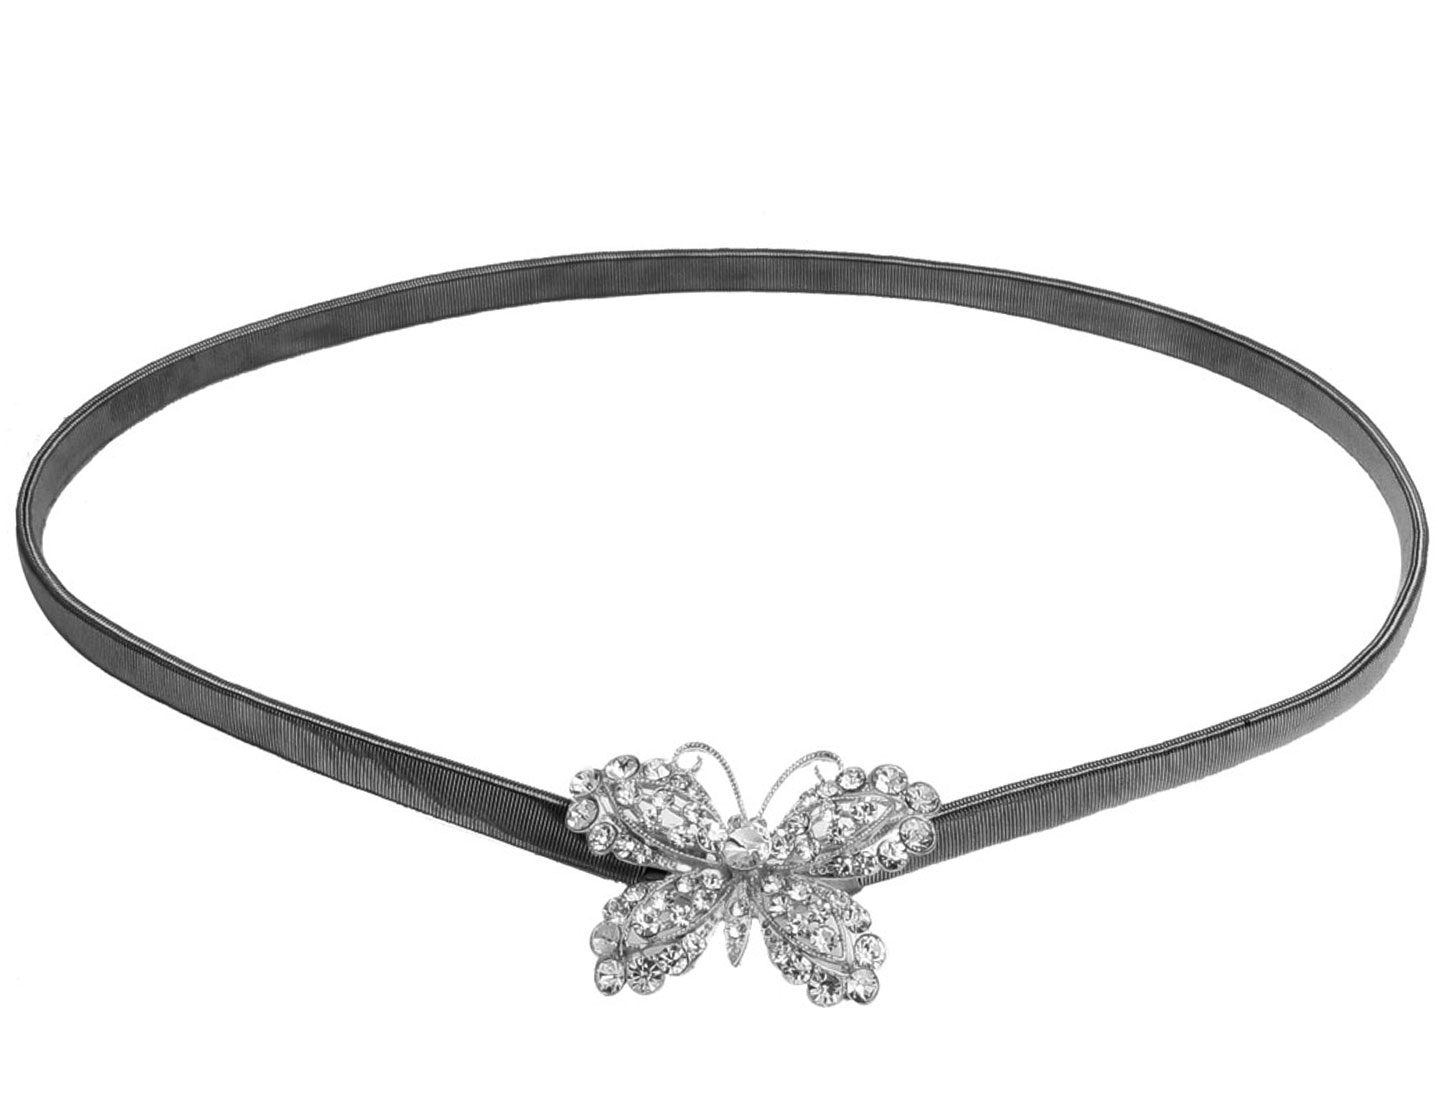 Faux Rhinetaone Detail Butterfly Shape Gray Metal Elastic Waist Chain for Lady